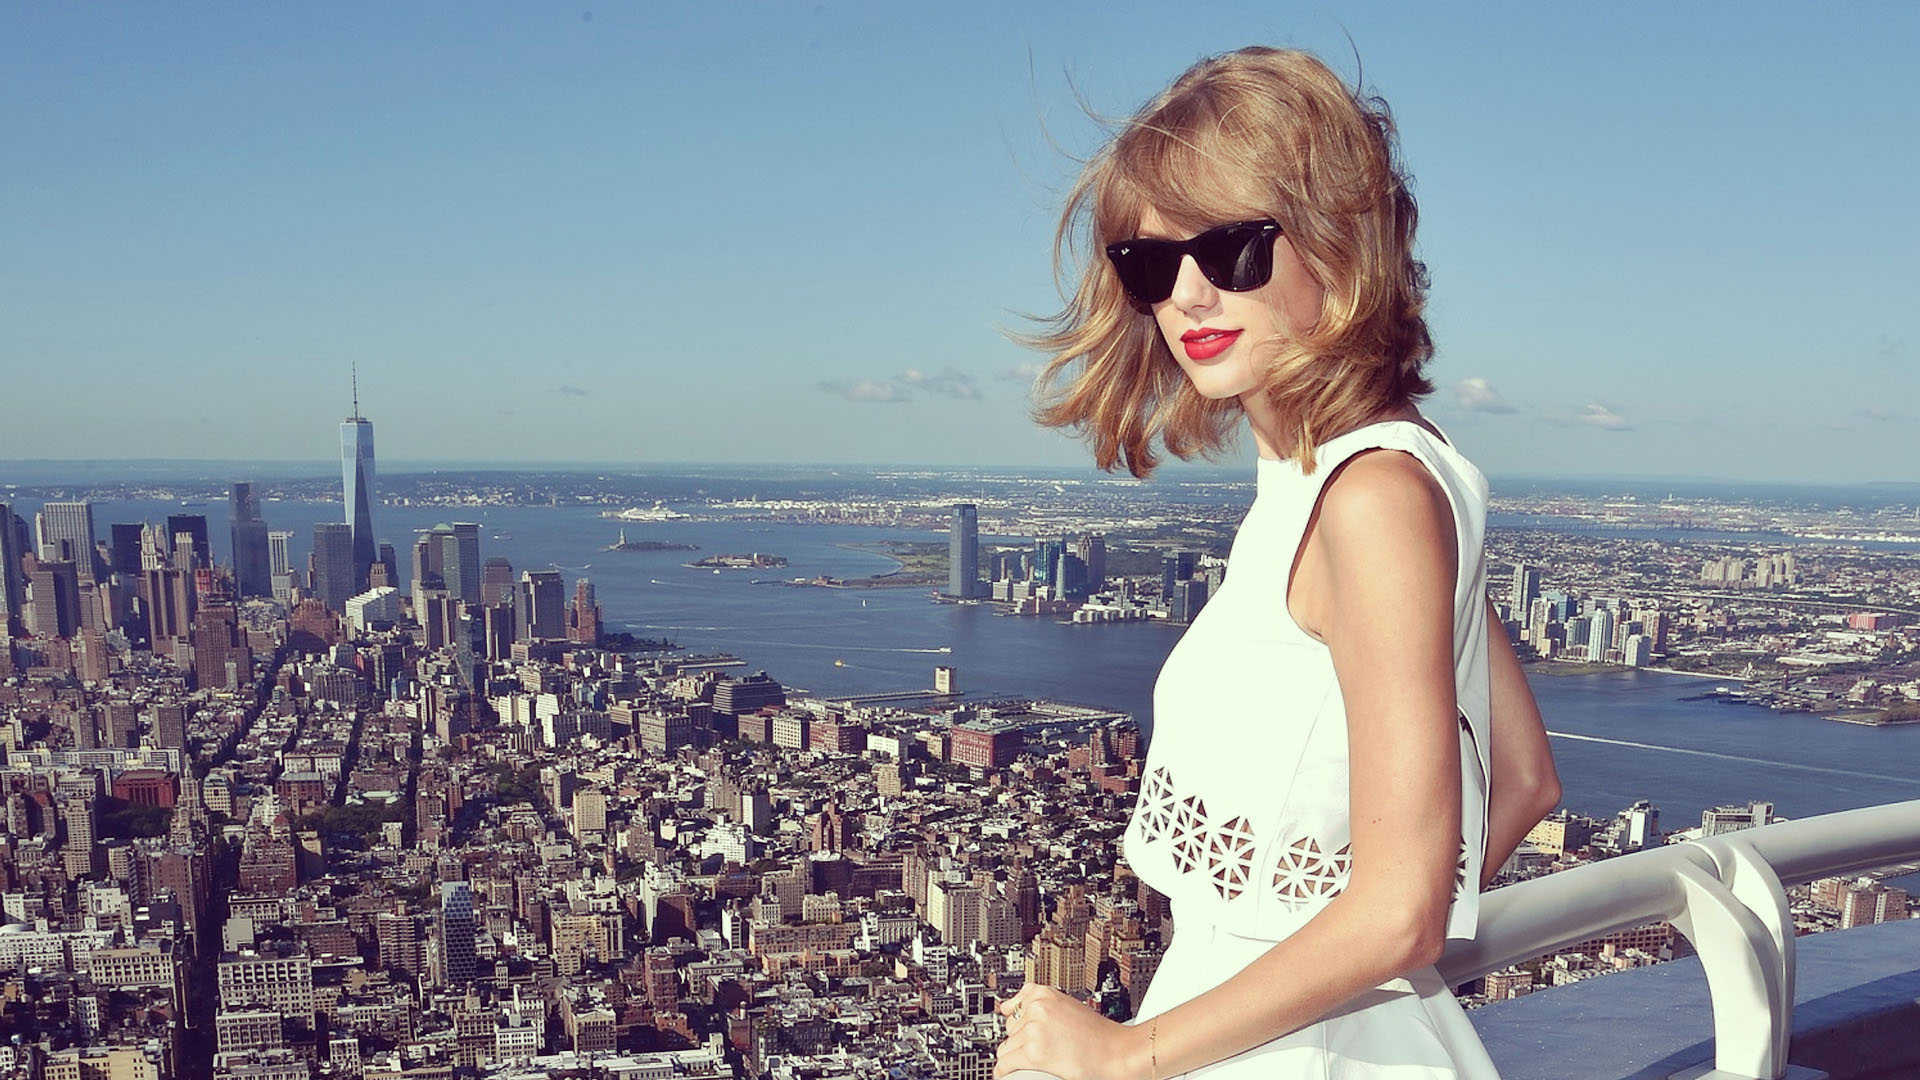 taylor-swift-picture-worldwide